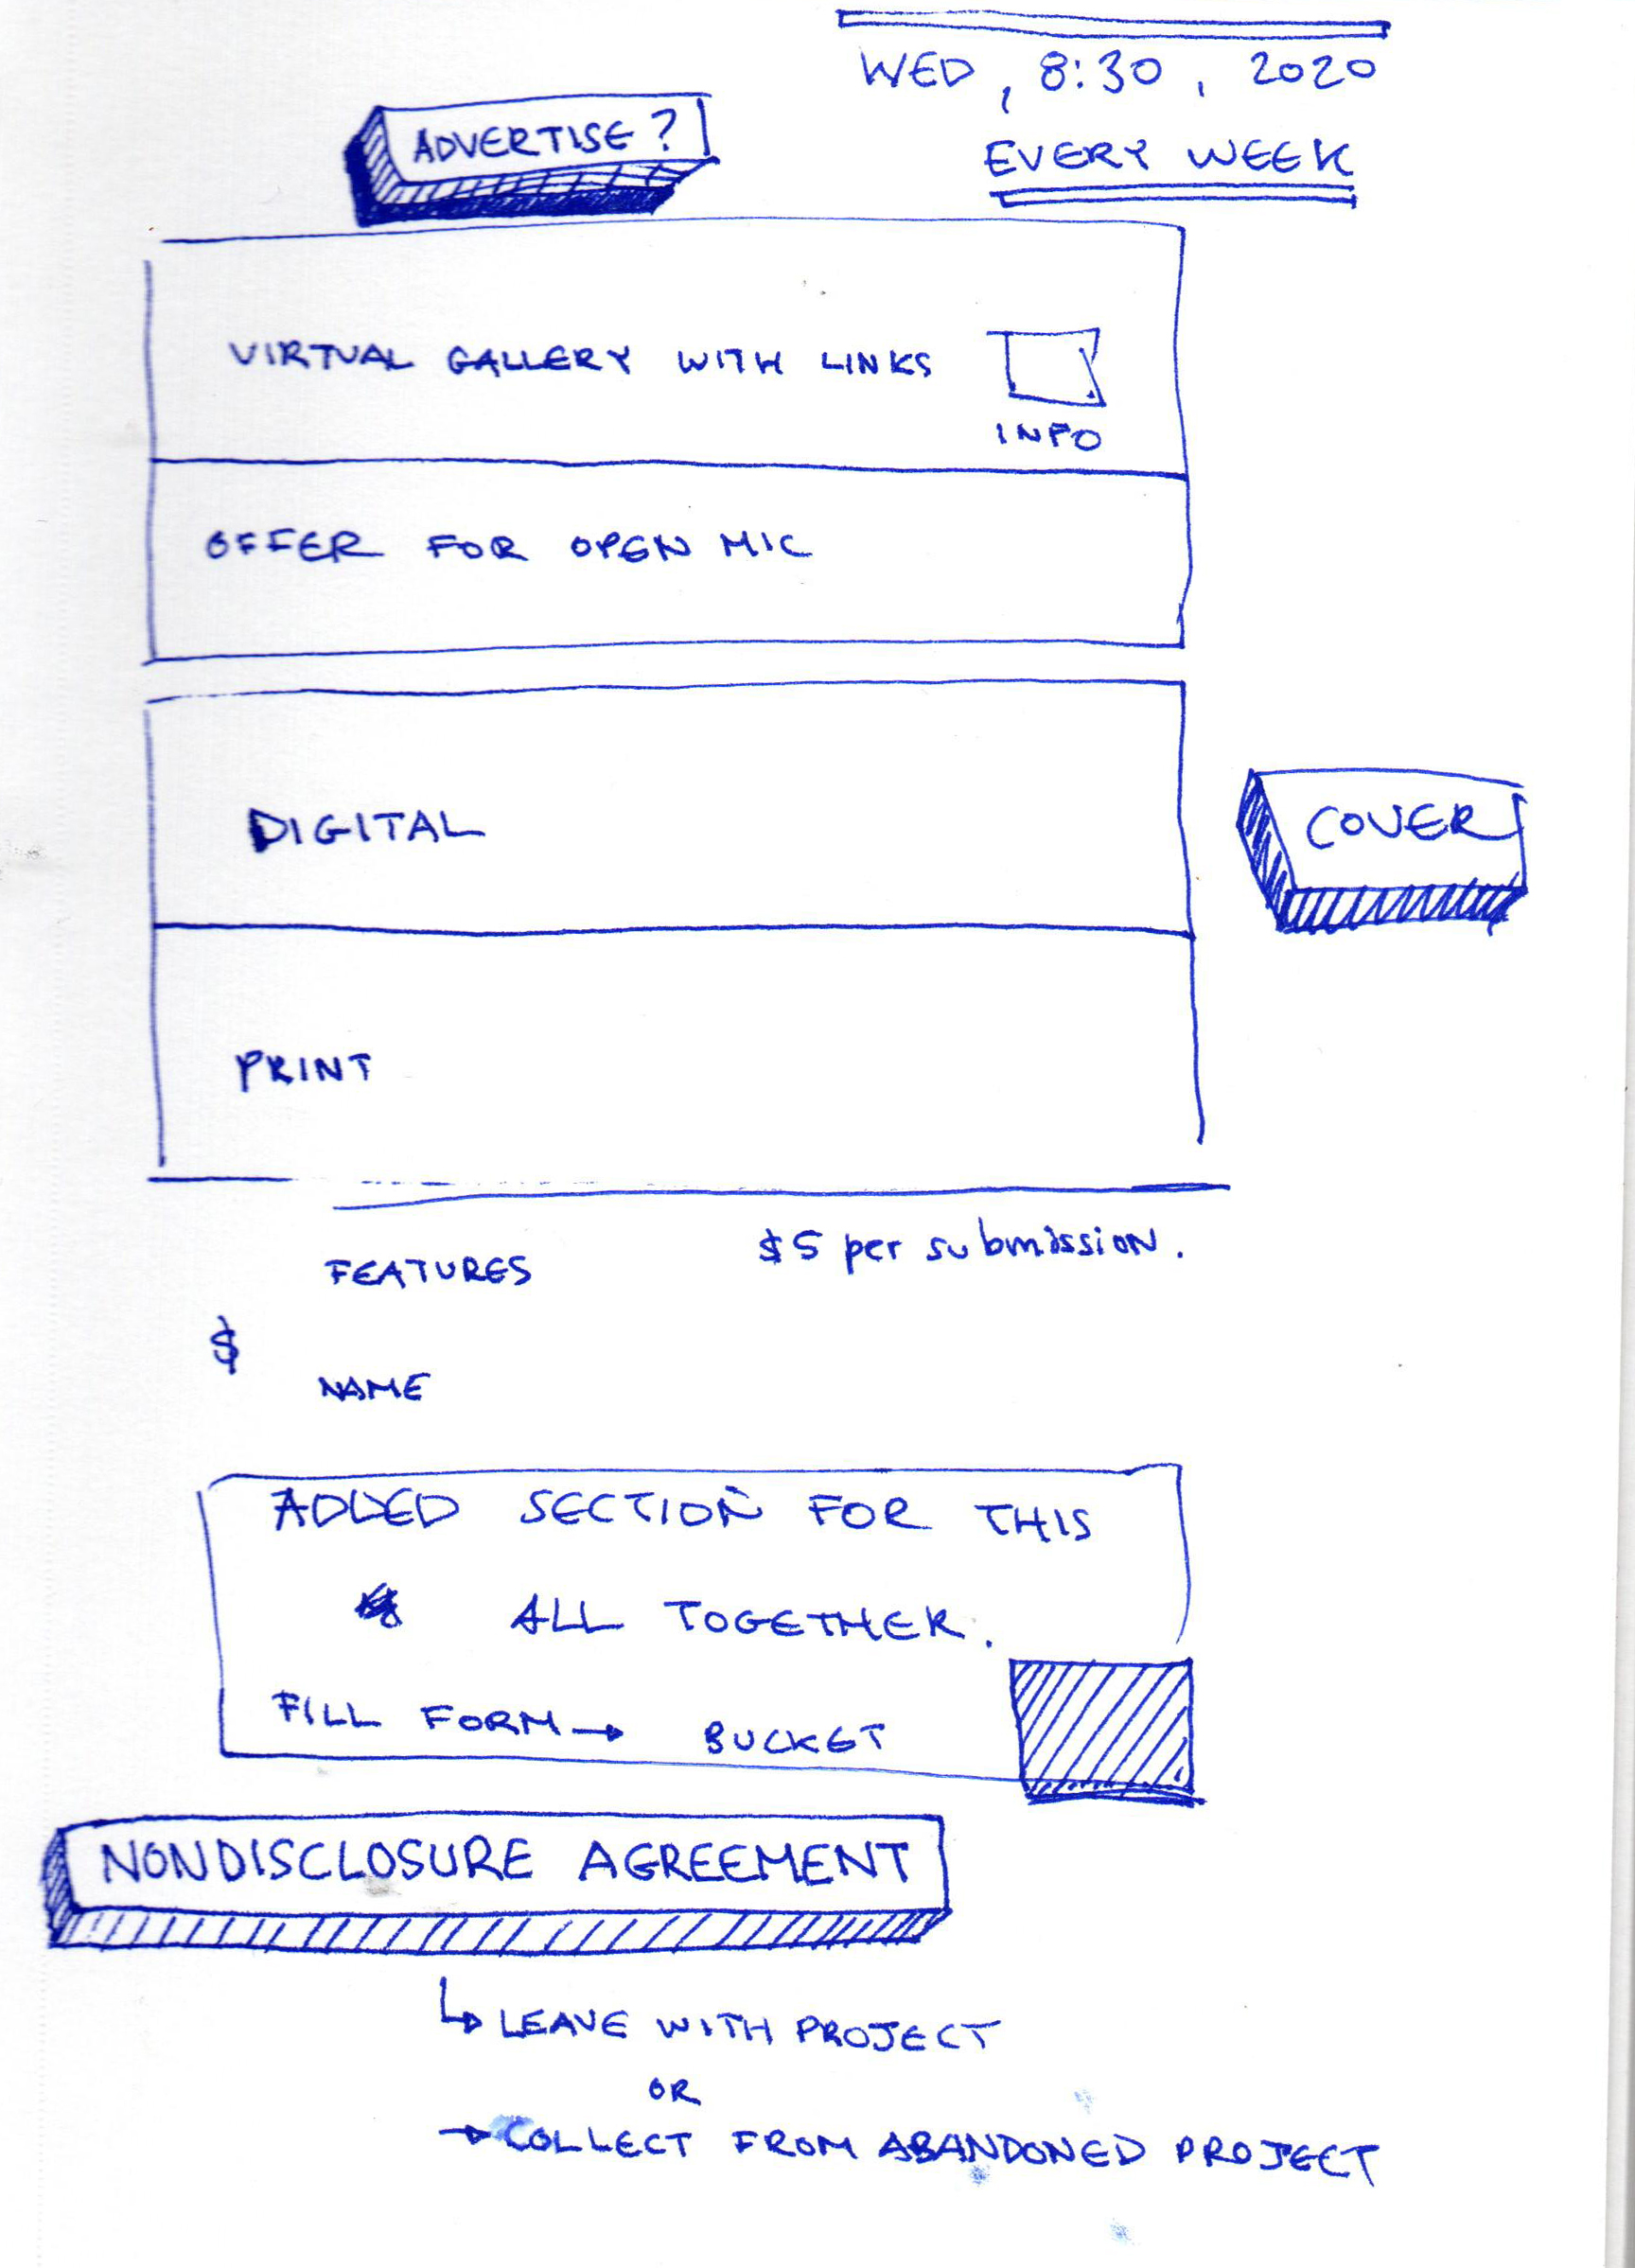 June 10th meeting Notes Page 4